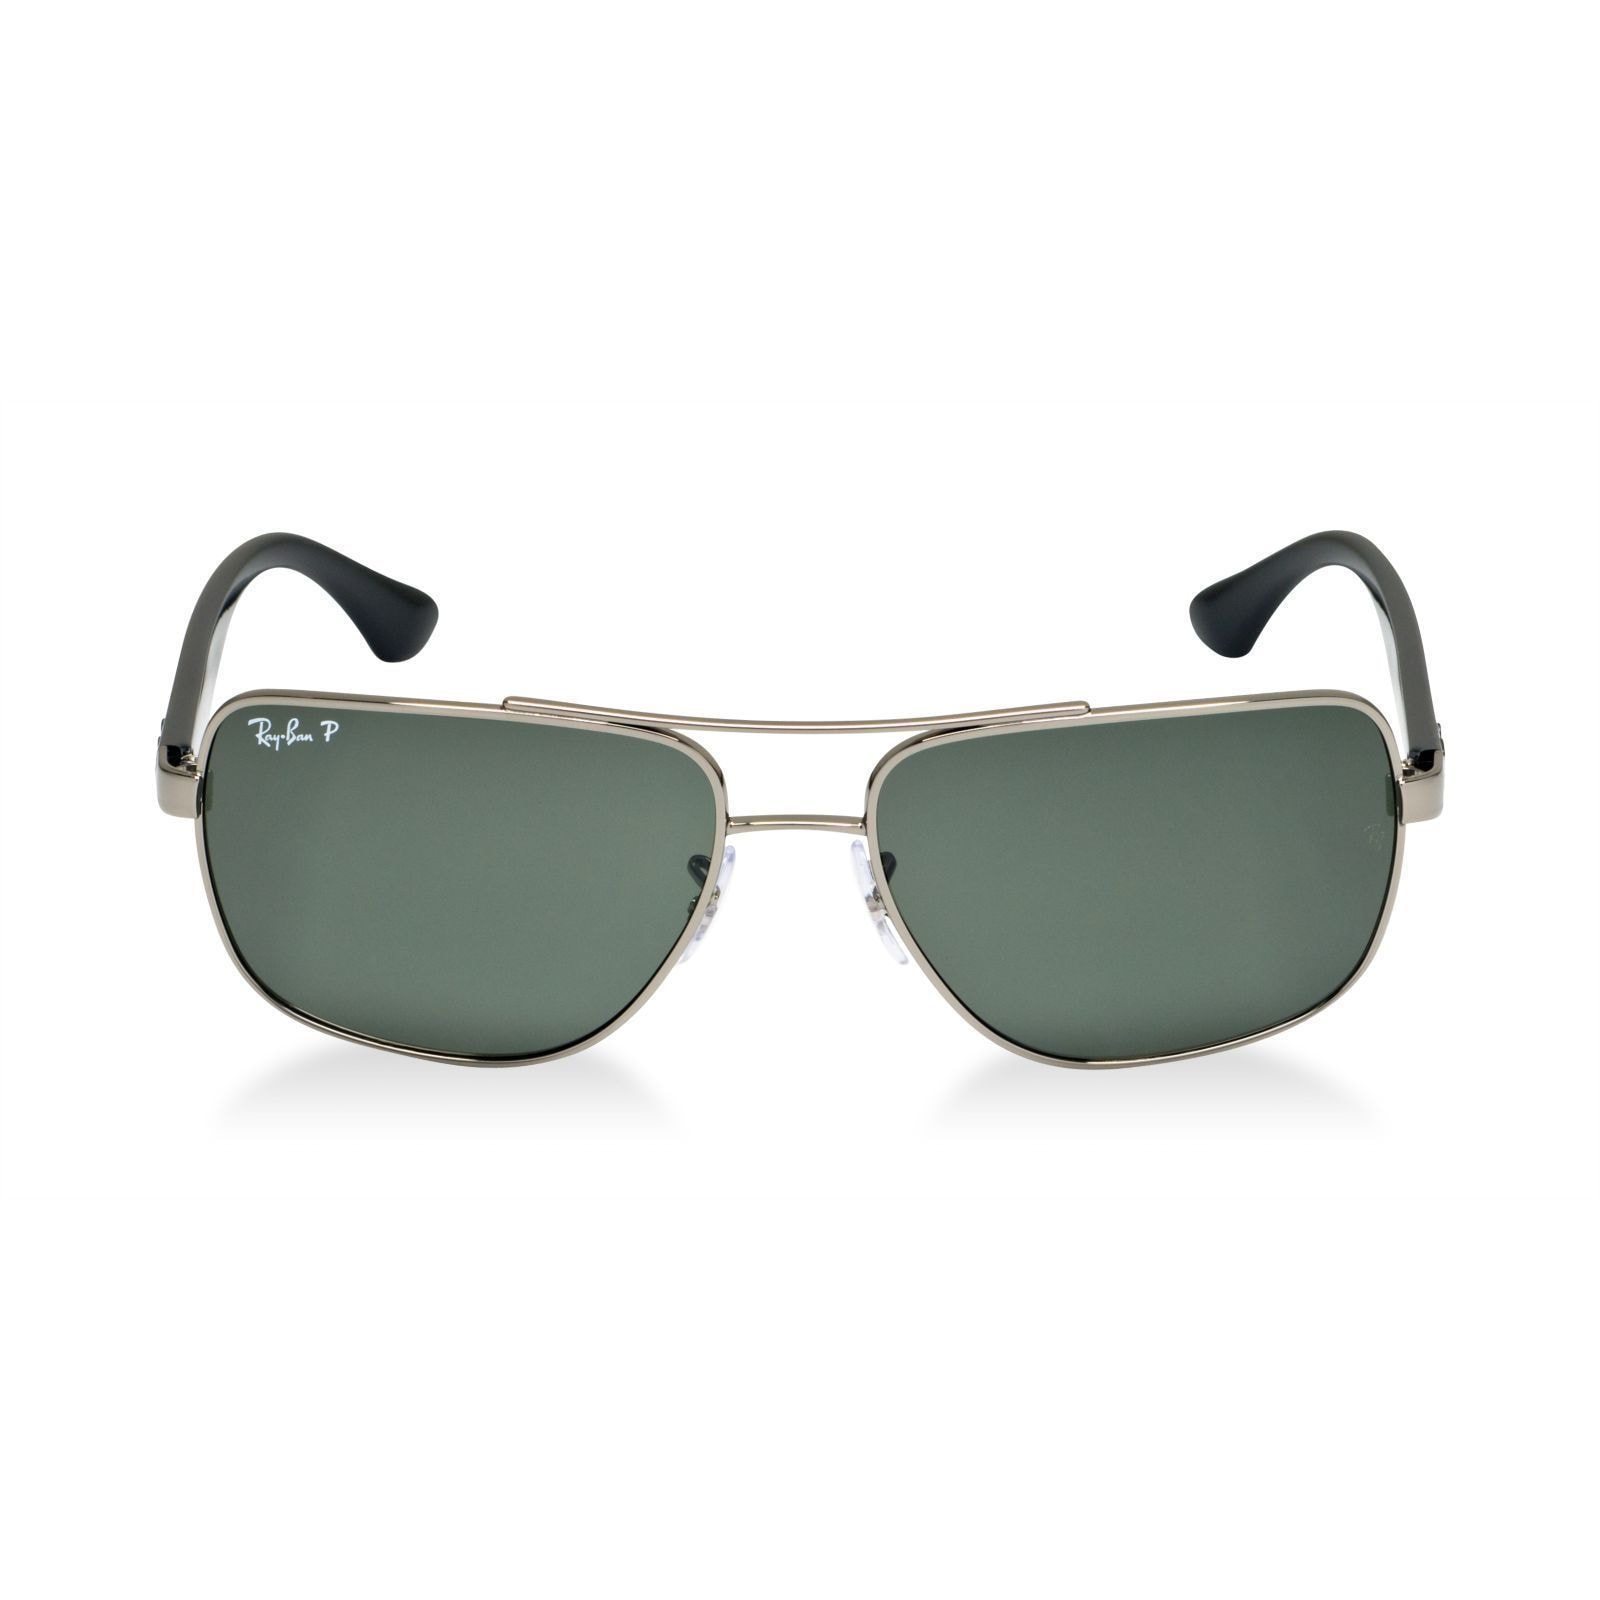 59f3ecf632a Shop Ray-Ban RB3483 004 58 Men s Gunmetal Black Frame Polarized Green Lens  Sunglasses - Free Shipping Today - Overstock - 15002995